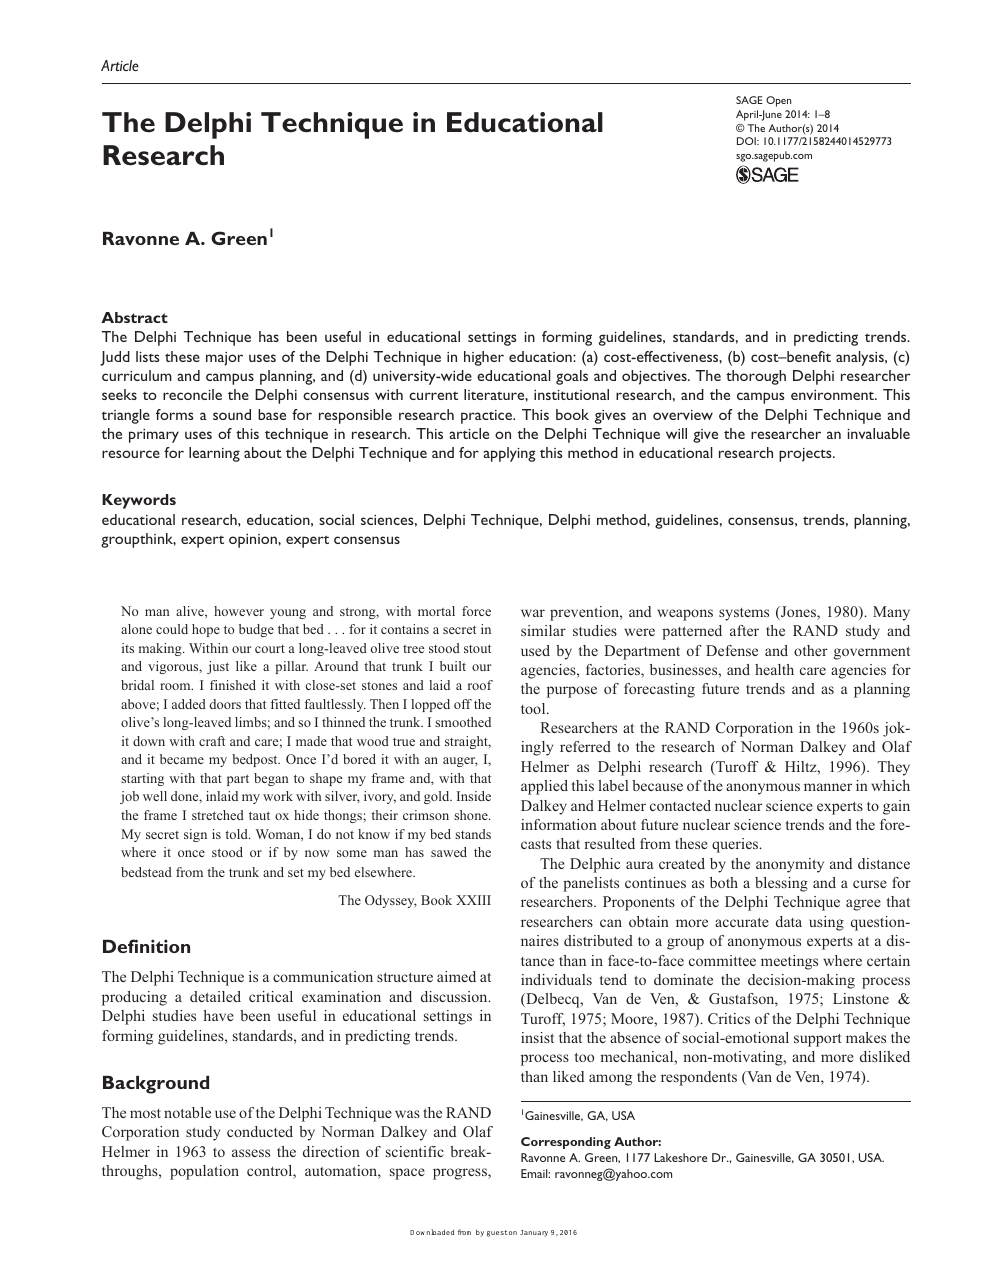 The Delphi Technique in Educational Research – topic of research